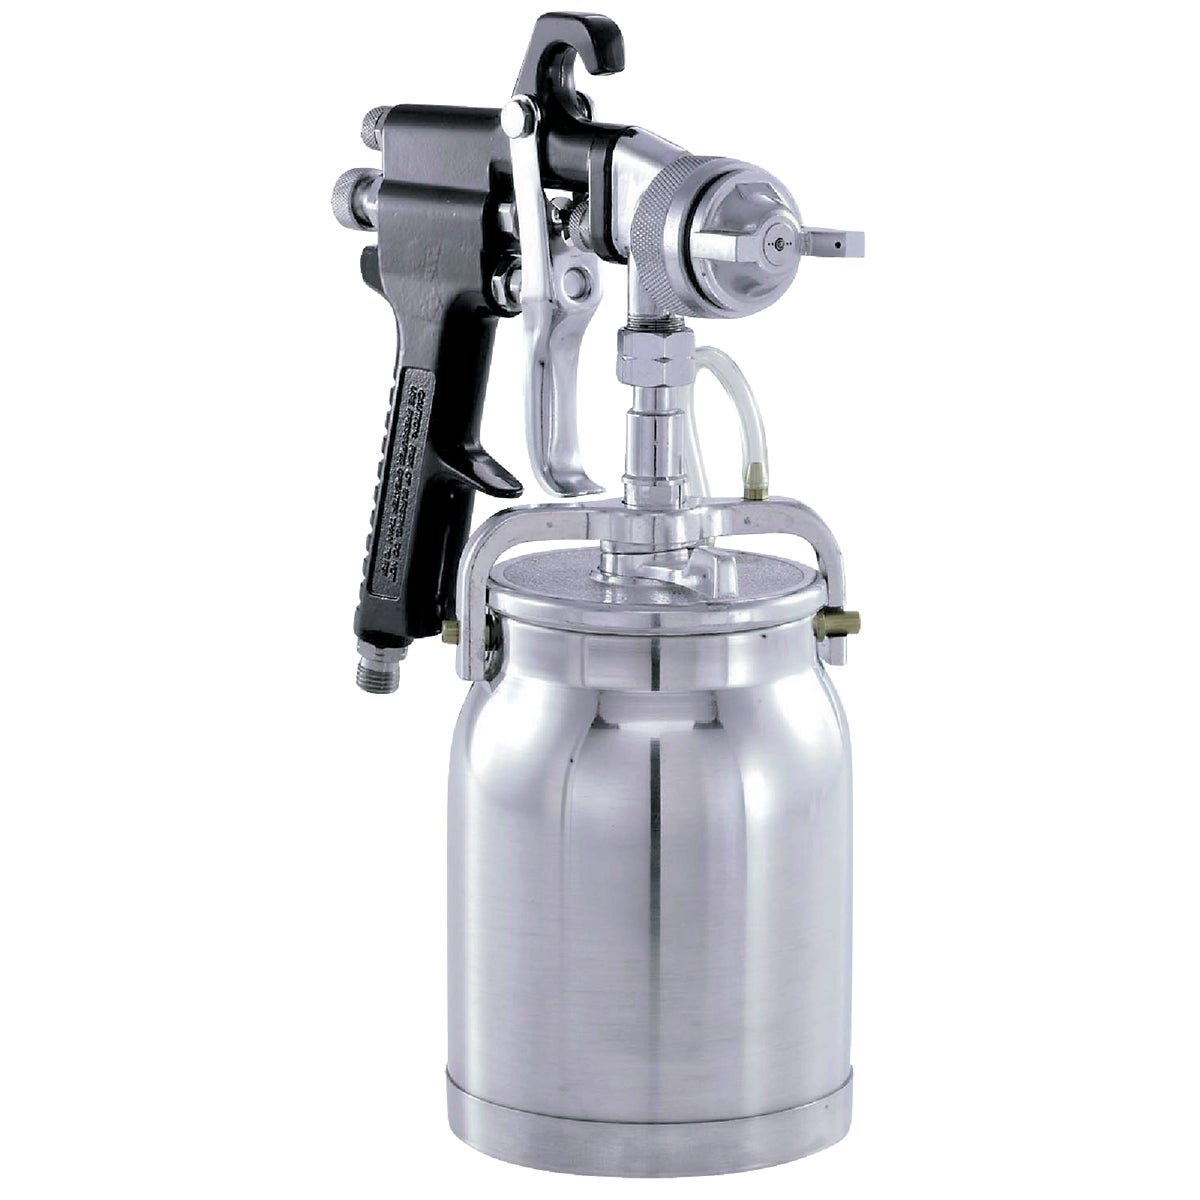 SPRAY GUN - DH6500 by Campbell Hausfeld Co